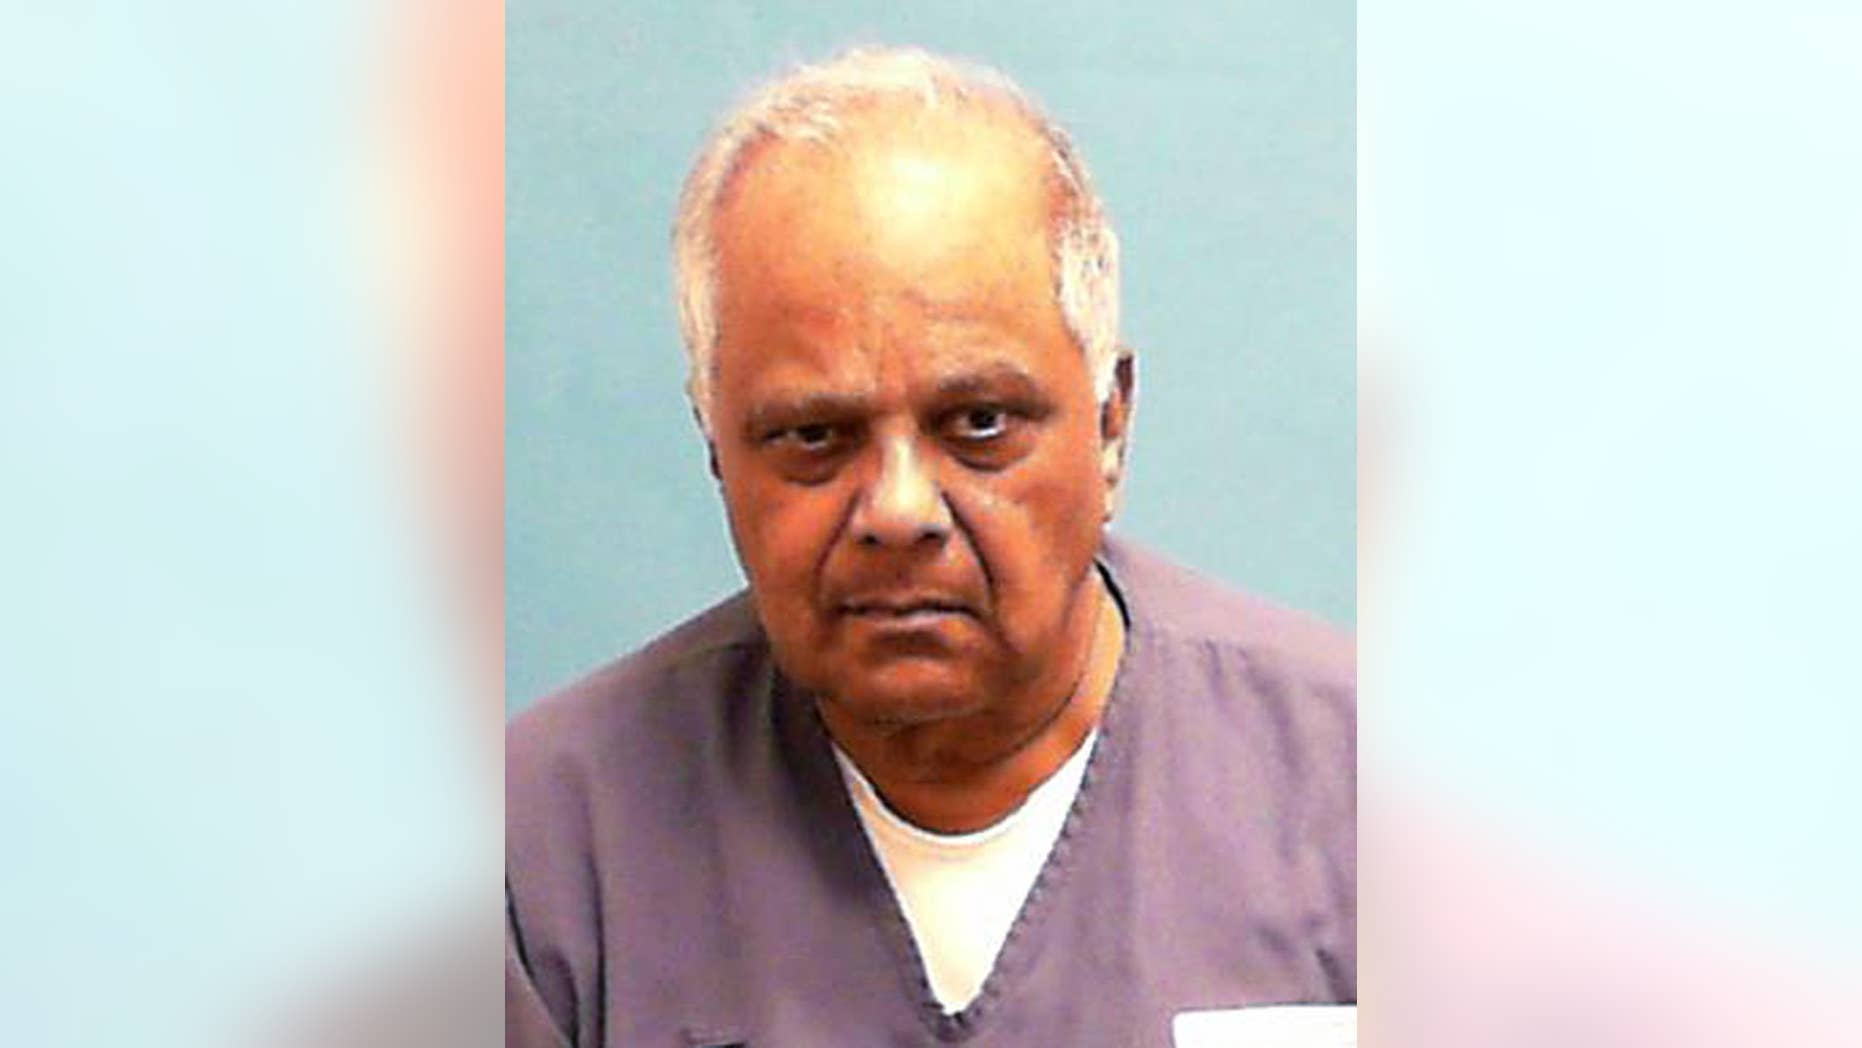 In this undated photo made available by the Florida Department of Corrections shows Krishna Maharaj in custody. The Miami-based 3rd District Court of Appeal on Wednesday, July 13, 2016, upheld without comment a 2015 ruling against a new trial for 77-year-old Maharaj. Maharaj contends he was framed by Colombian drug cartels for the 1985 shooting deaths of his business partner and the partner's son at a downtown Miami hotel. (Florida Department of Corrections via AP)